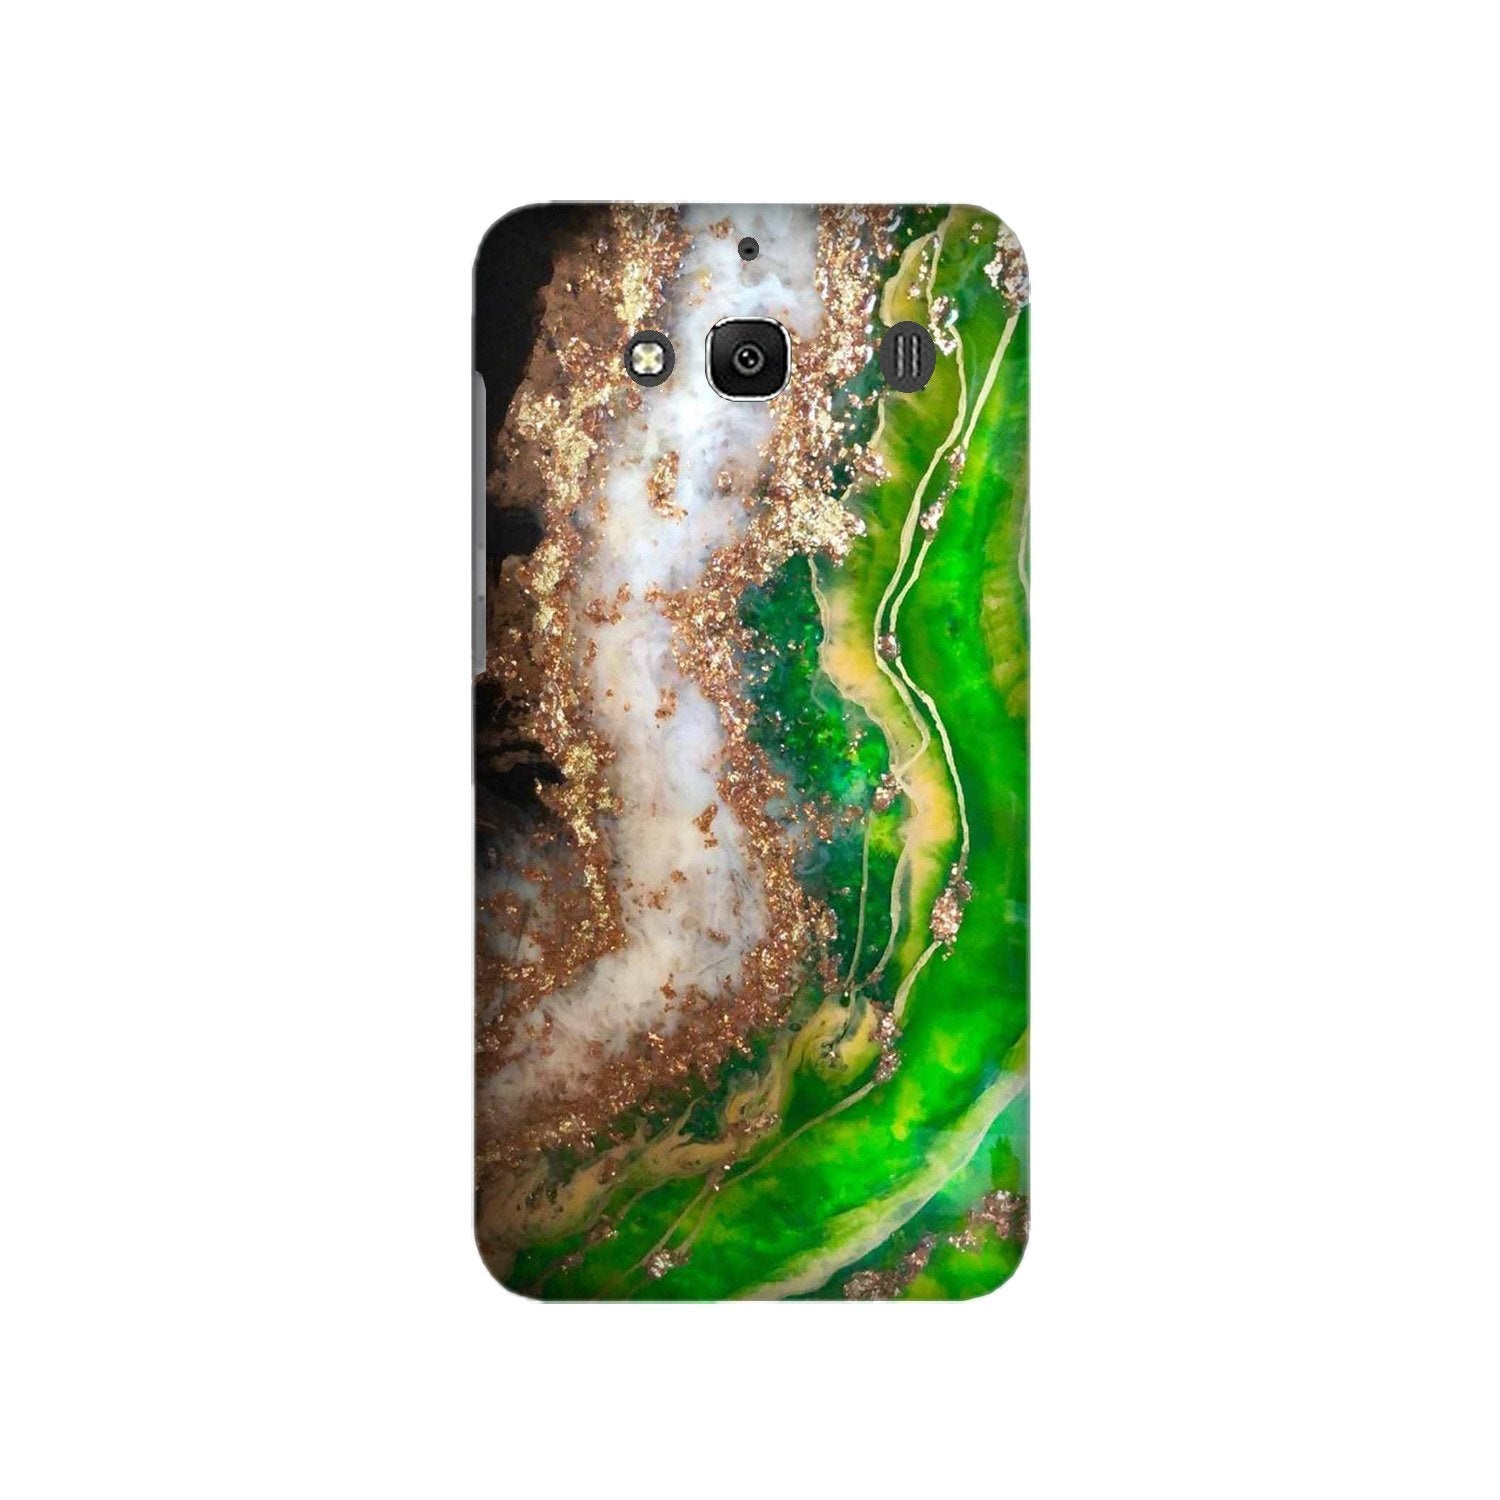 Marble Texture Mobile Back Case for Redmi 2 Prime  (Design - 307)